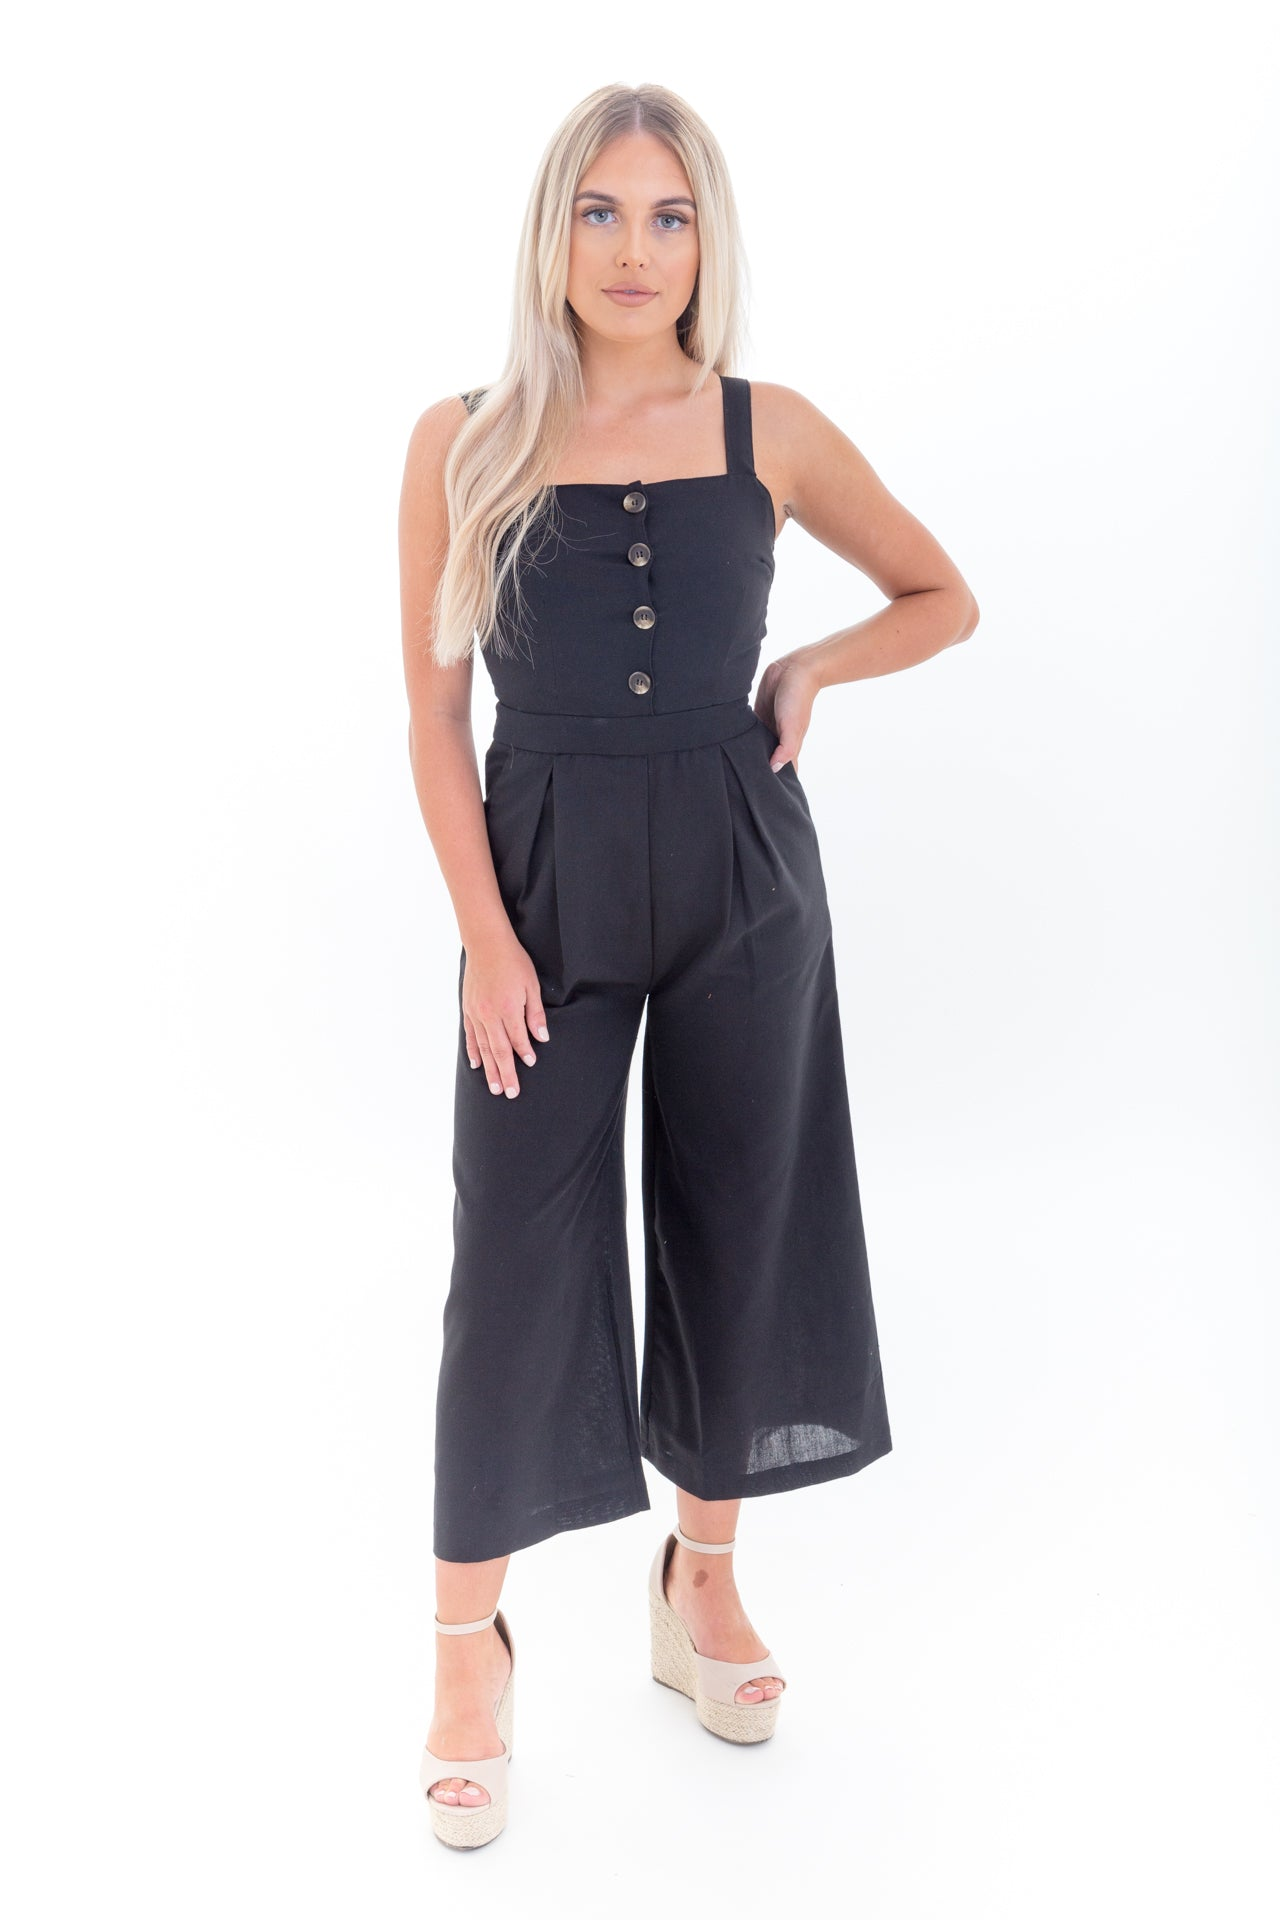 Black Cropped Leg Jumpsuit with Buttons